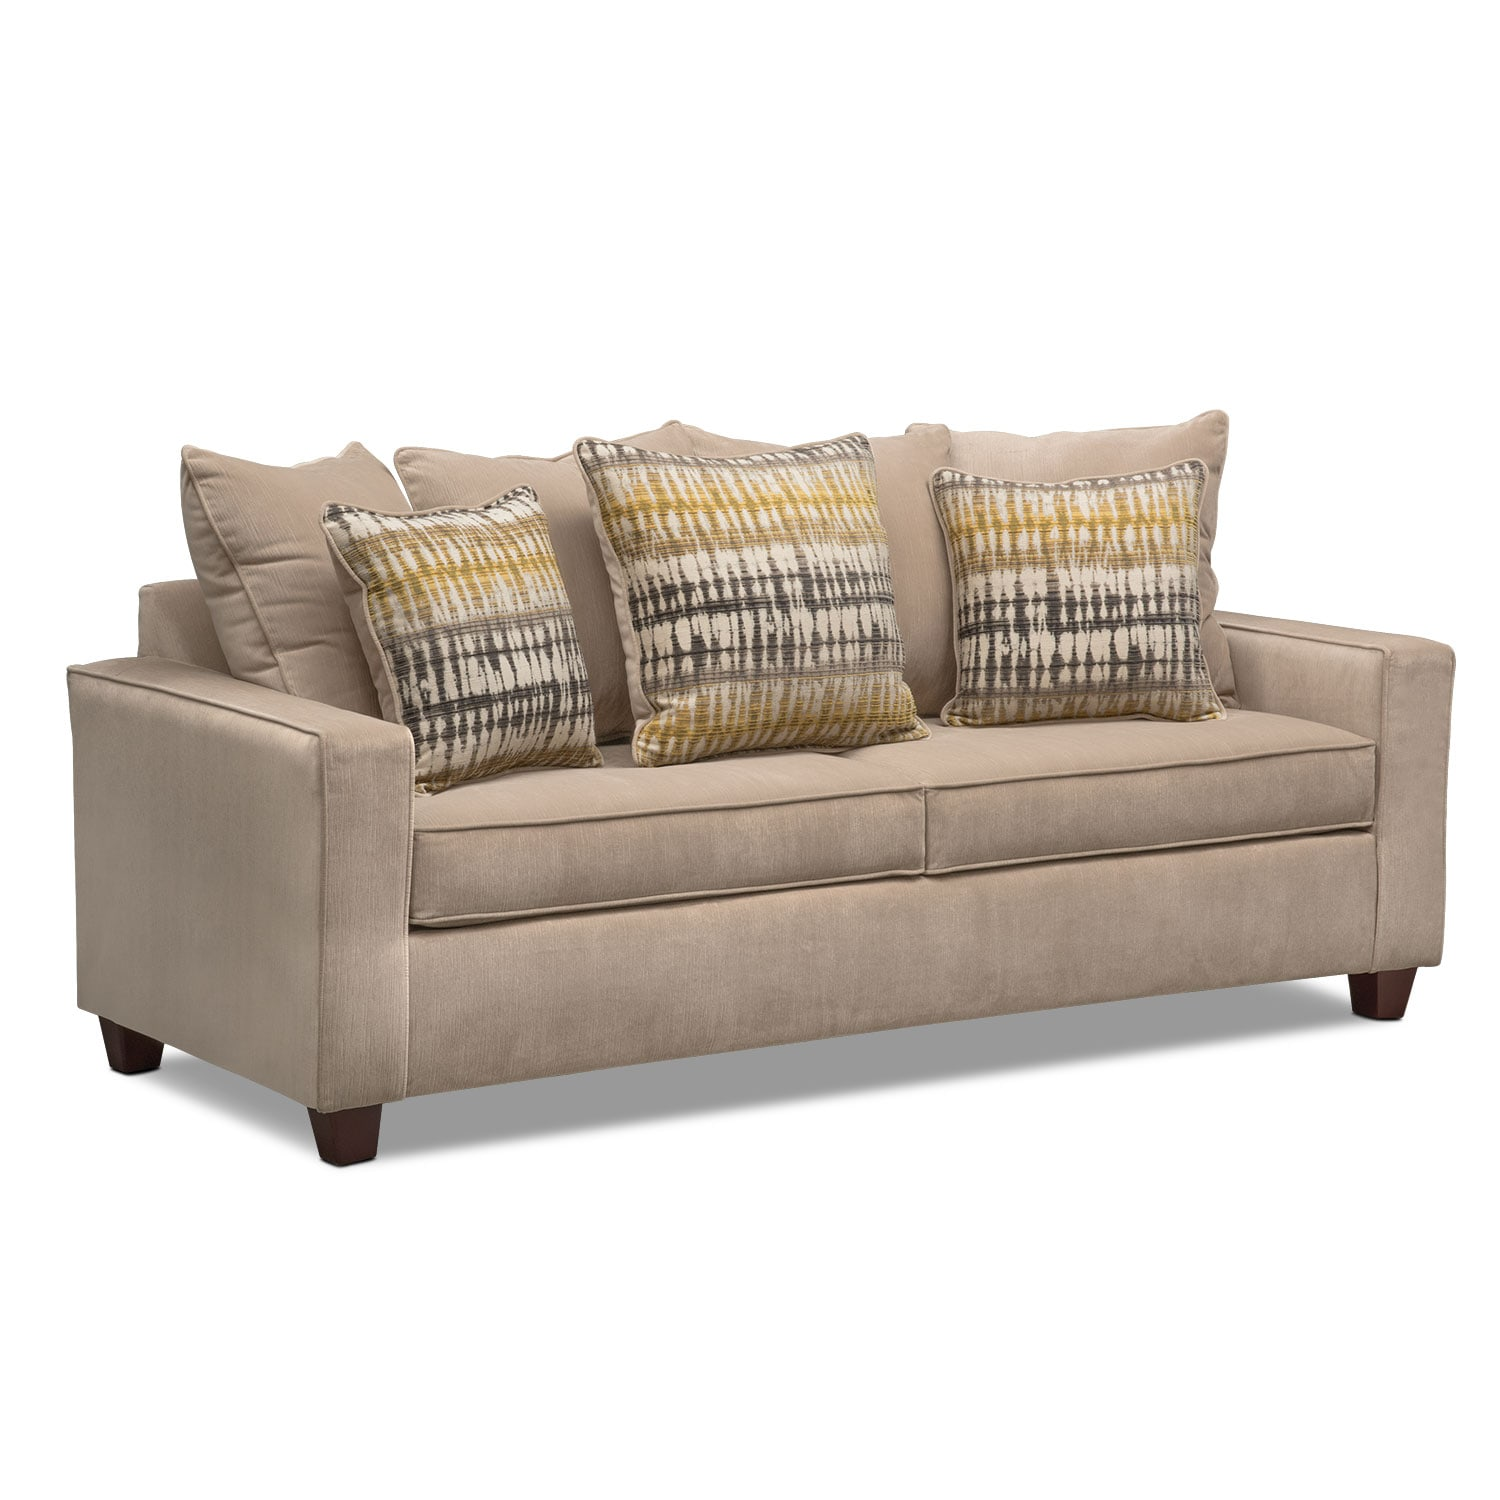 Living Room Furniture - Bryden Sofa